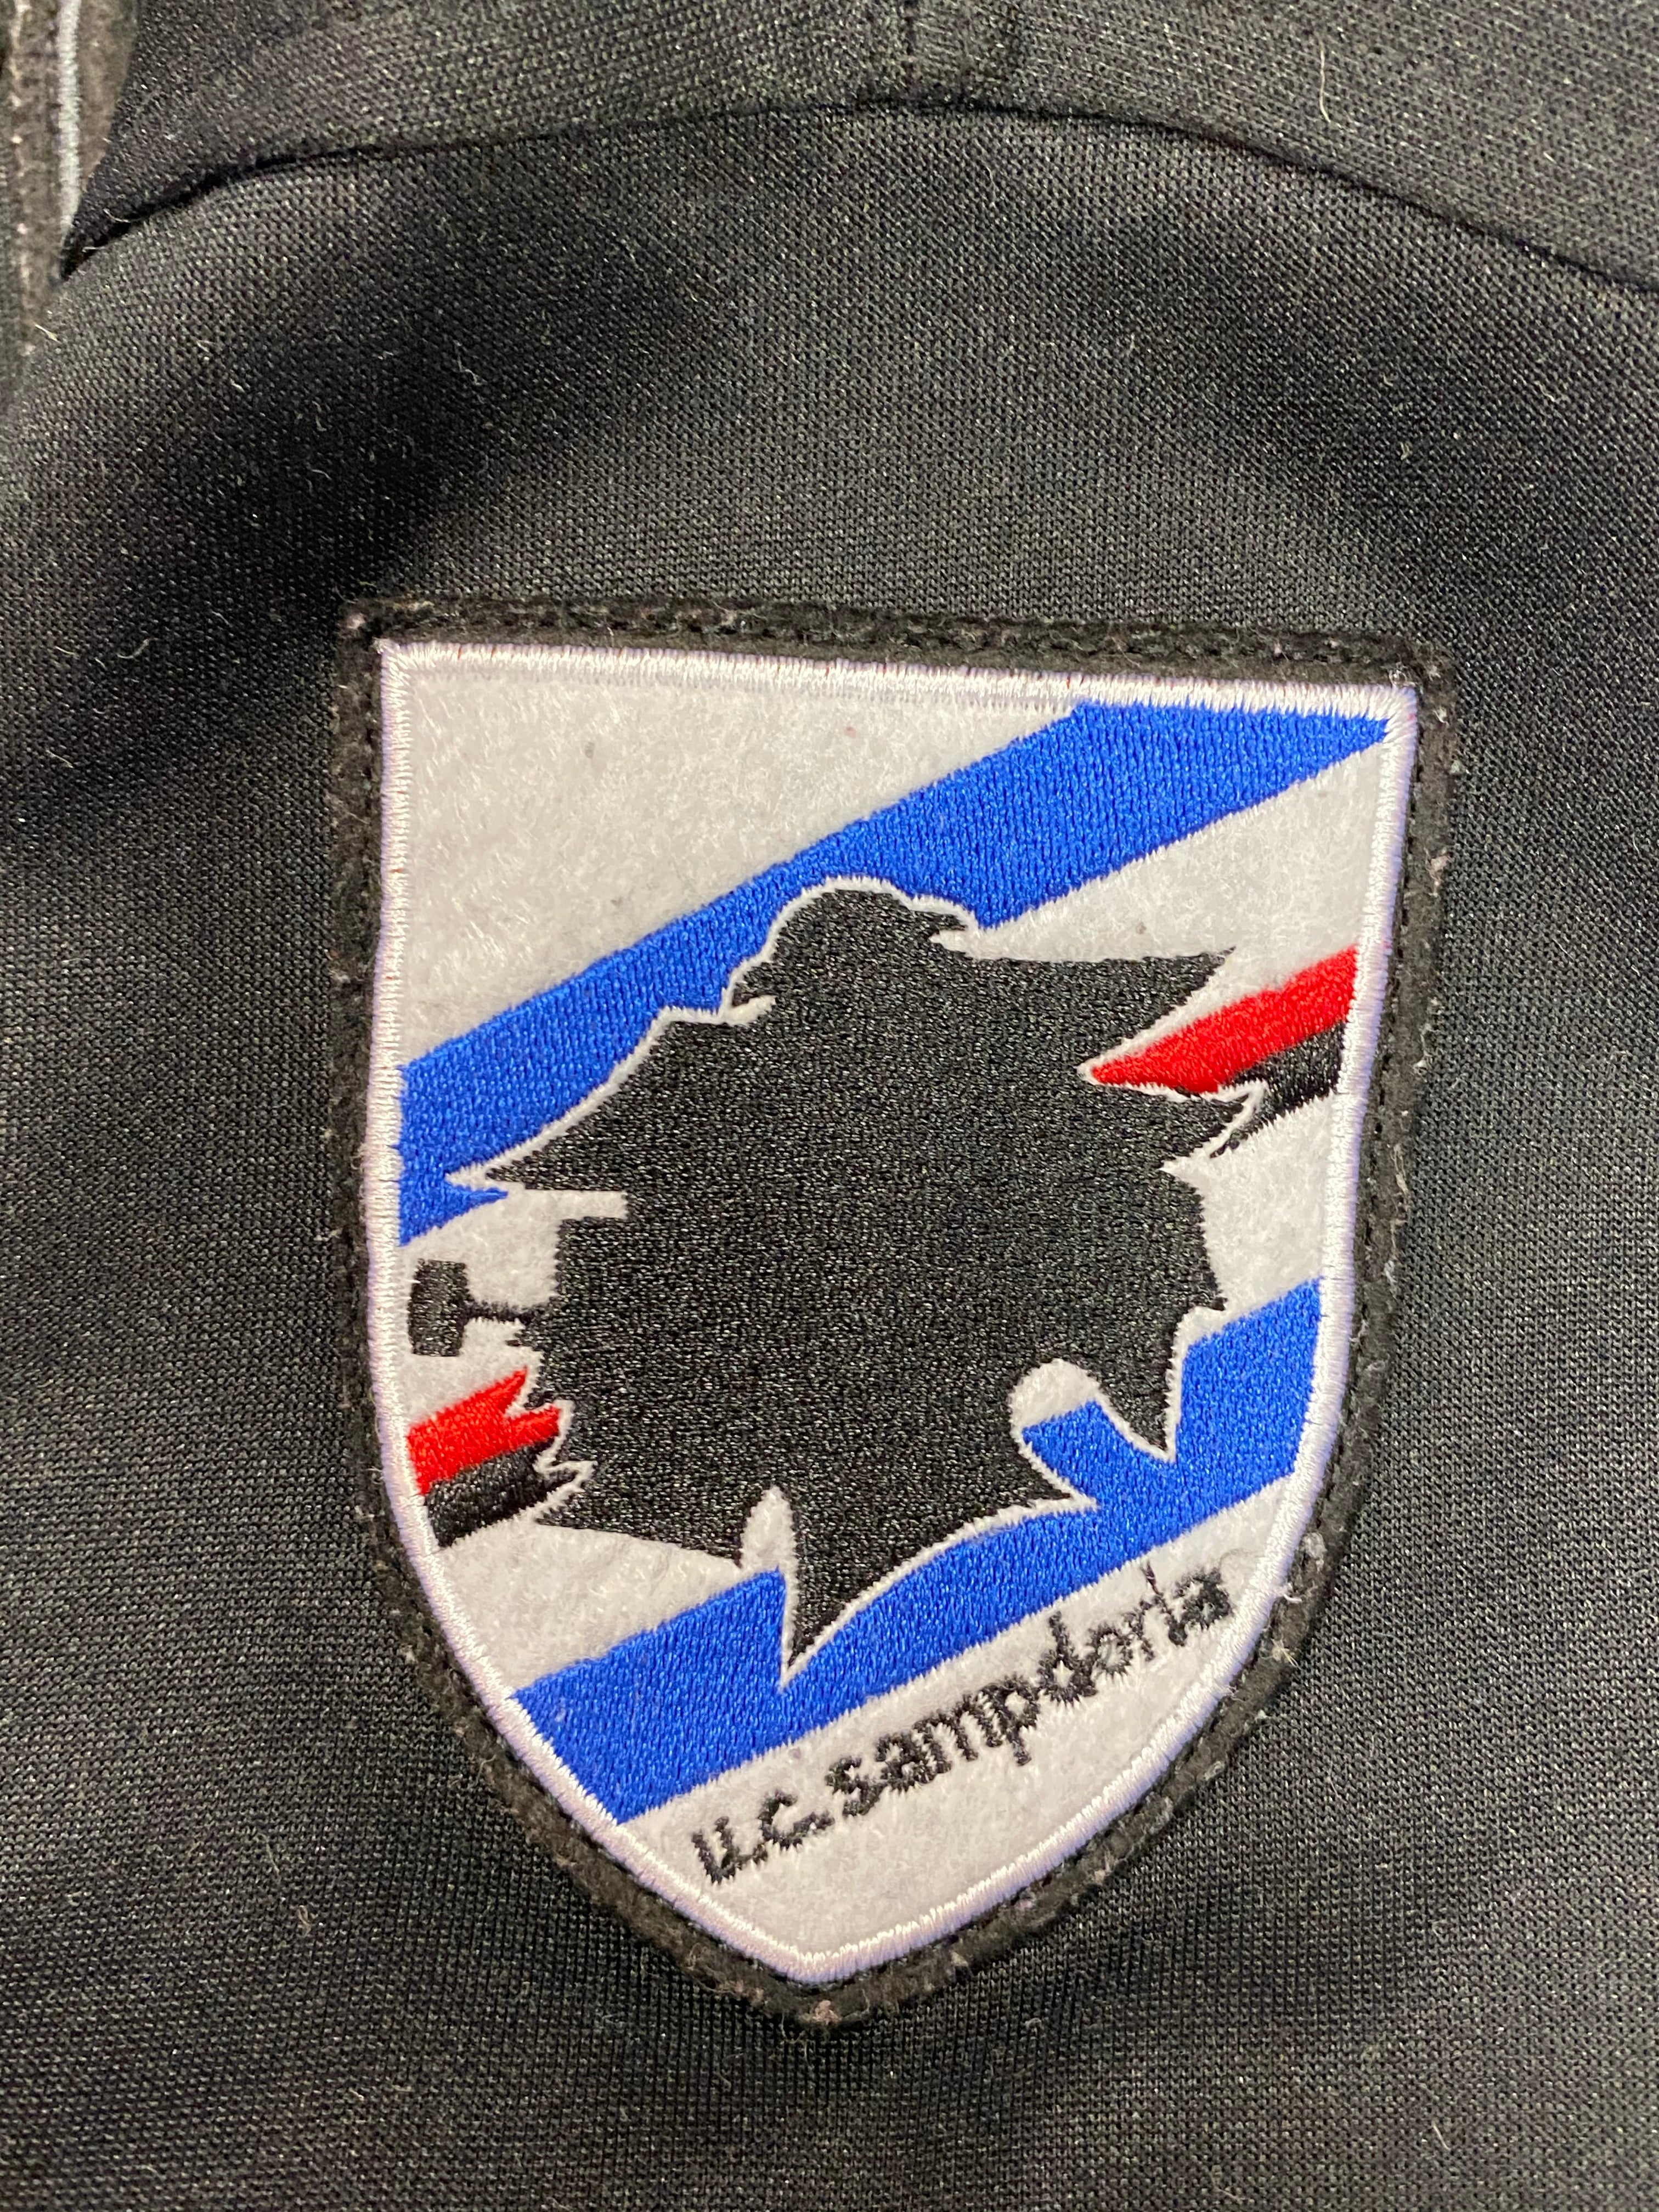 2010/11 Sampdoria Track Jacket (M) 9/10